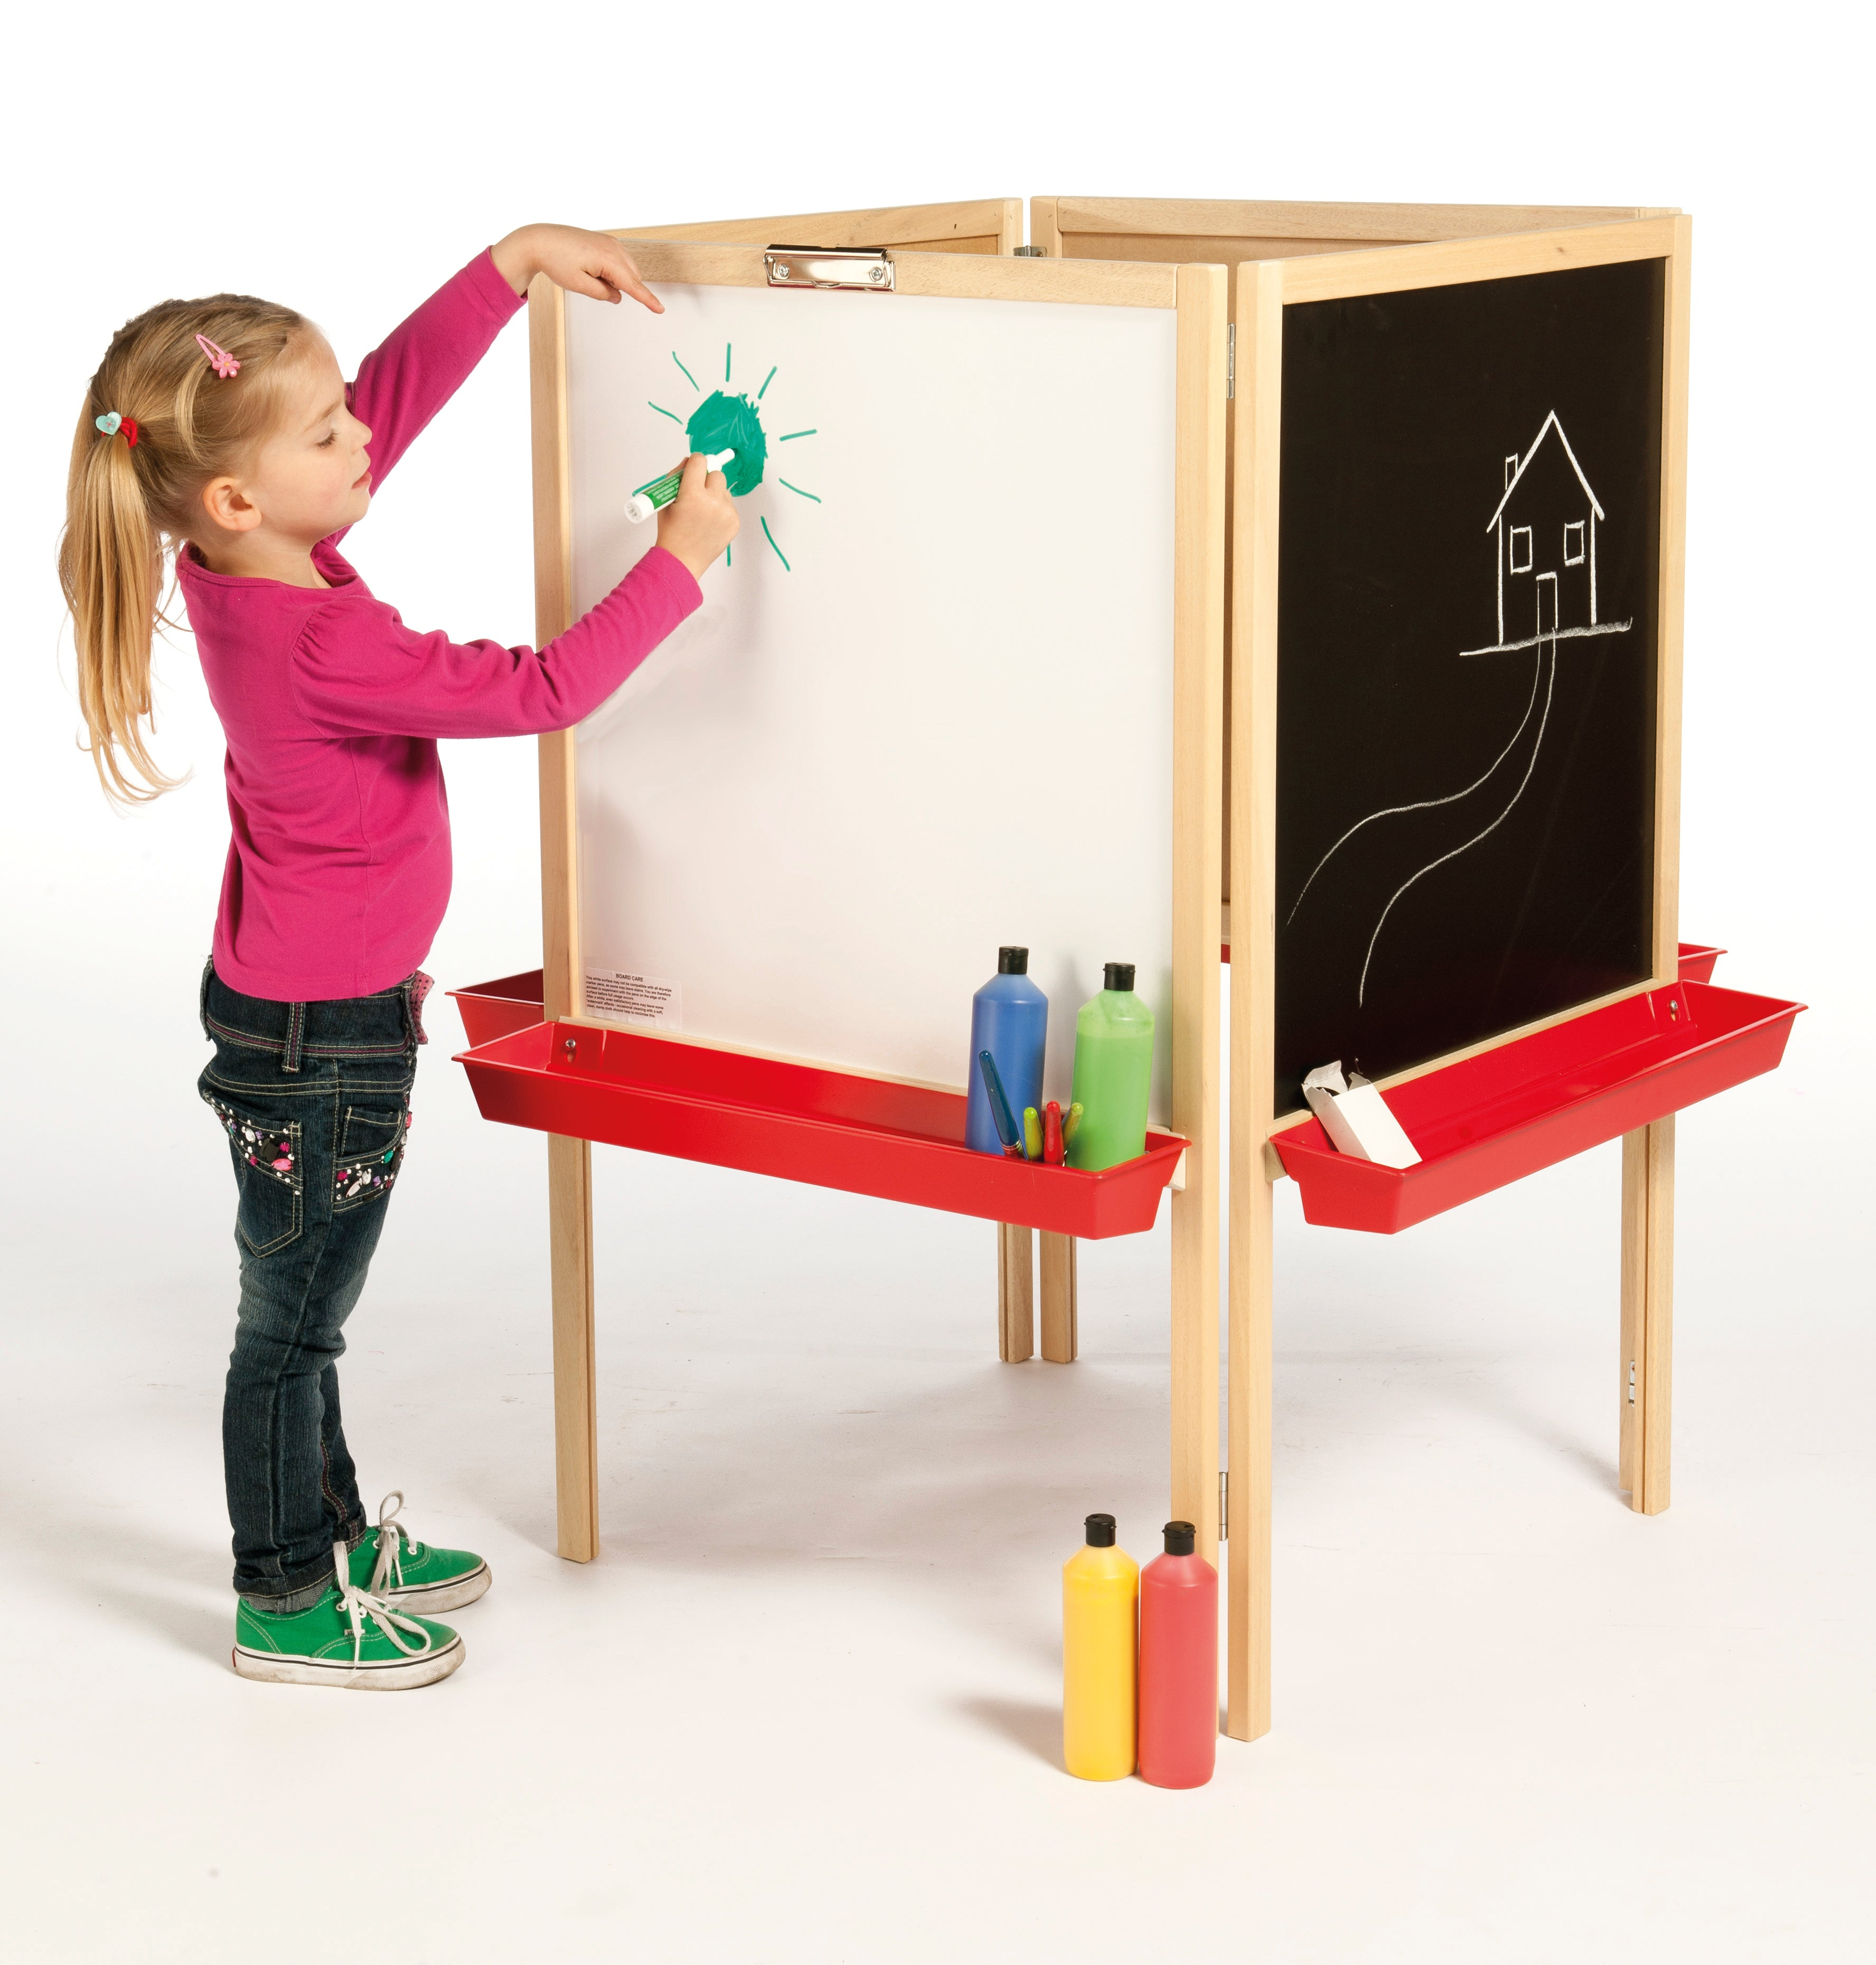 4 Sided Easel